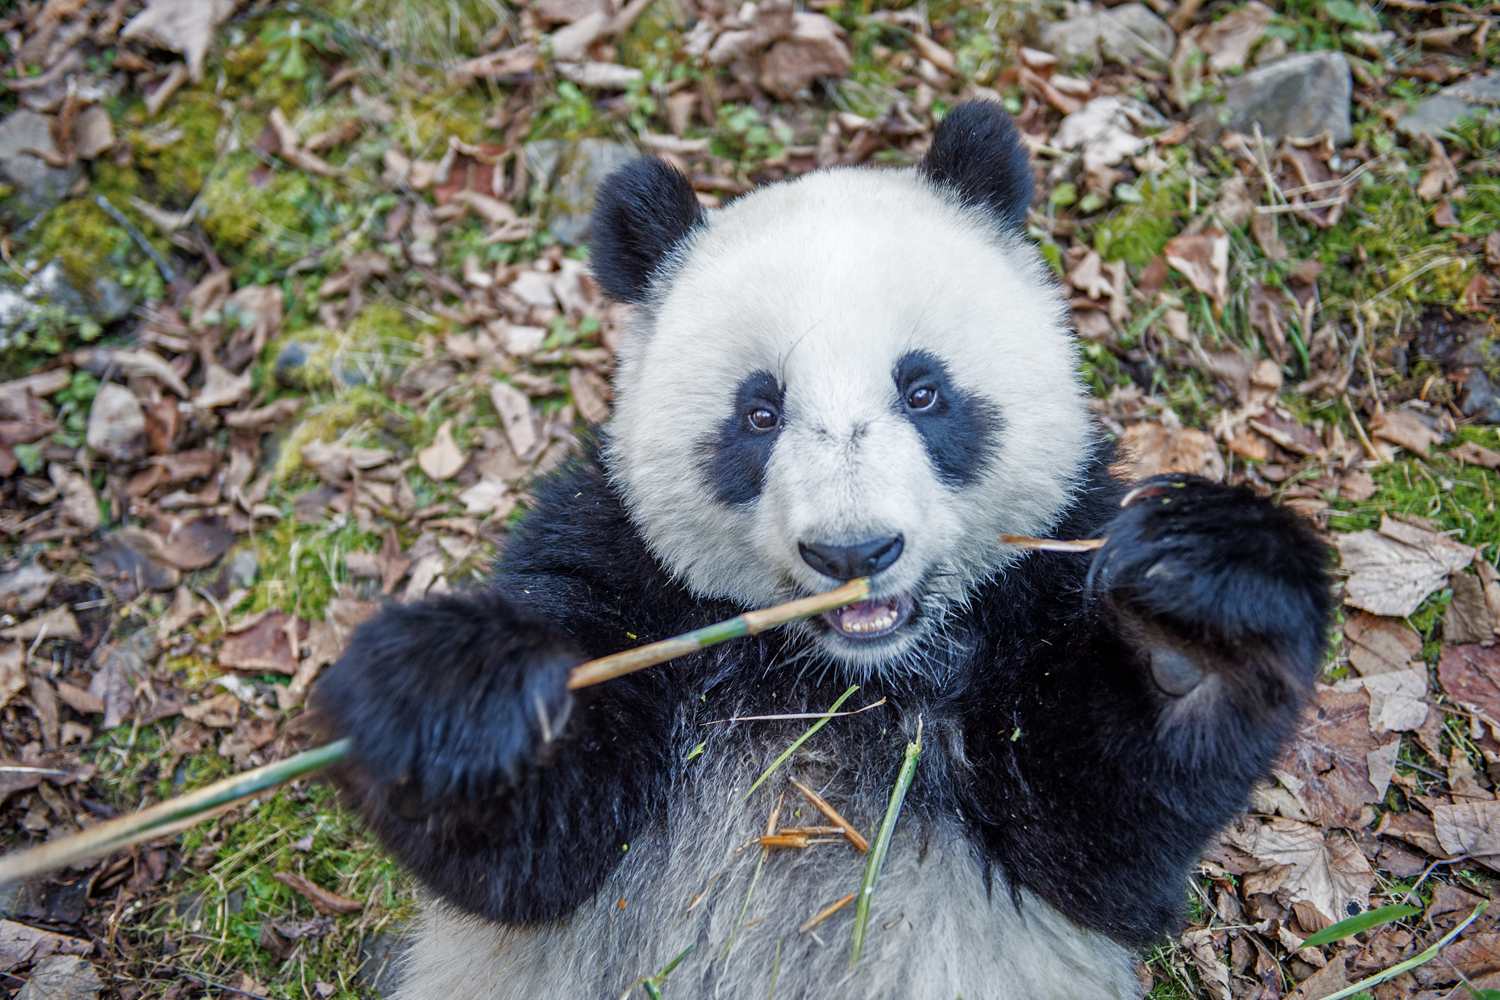 A captive born panda eats bamboo in  the  Deng Sheng Valley forest                               in Sichuan China.